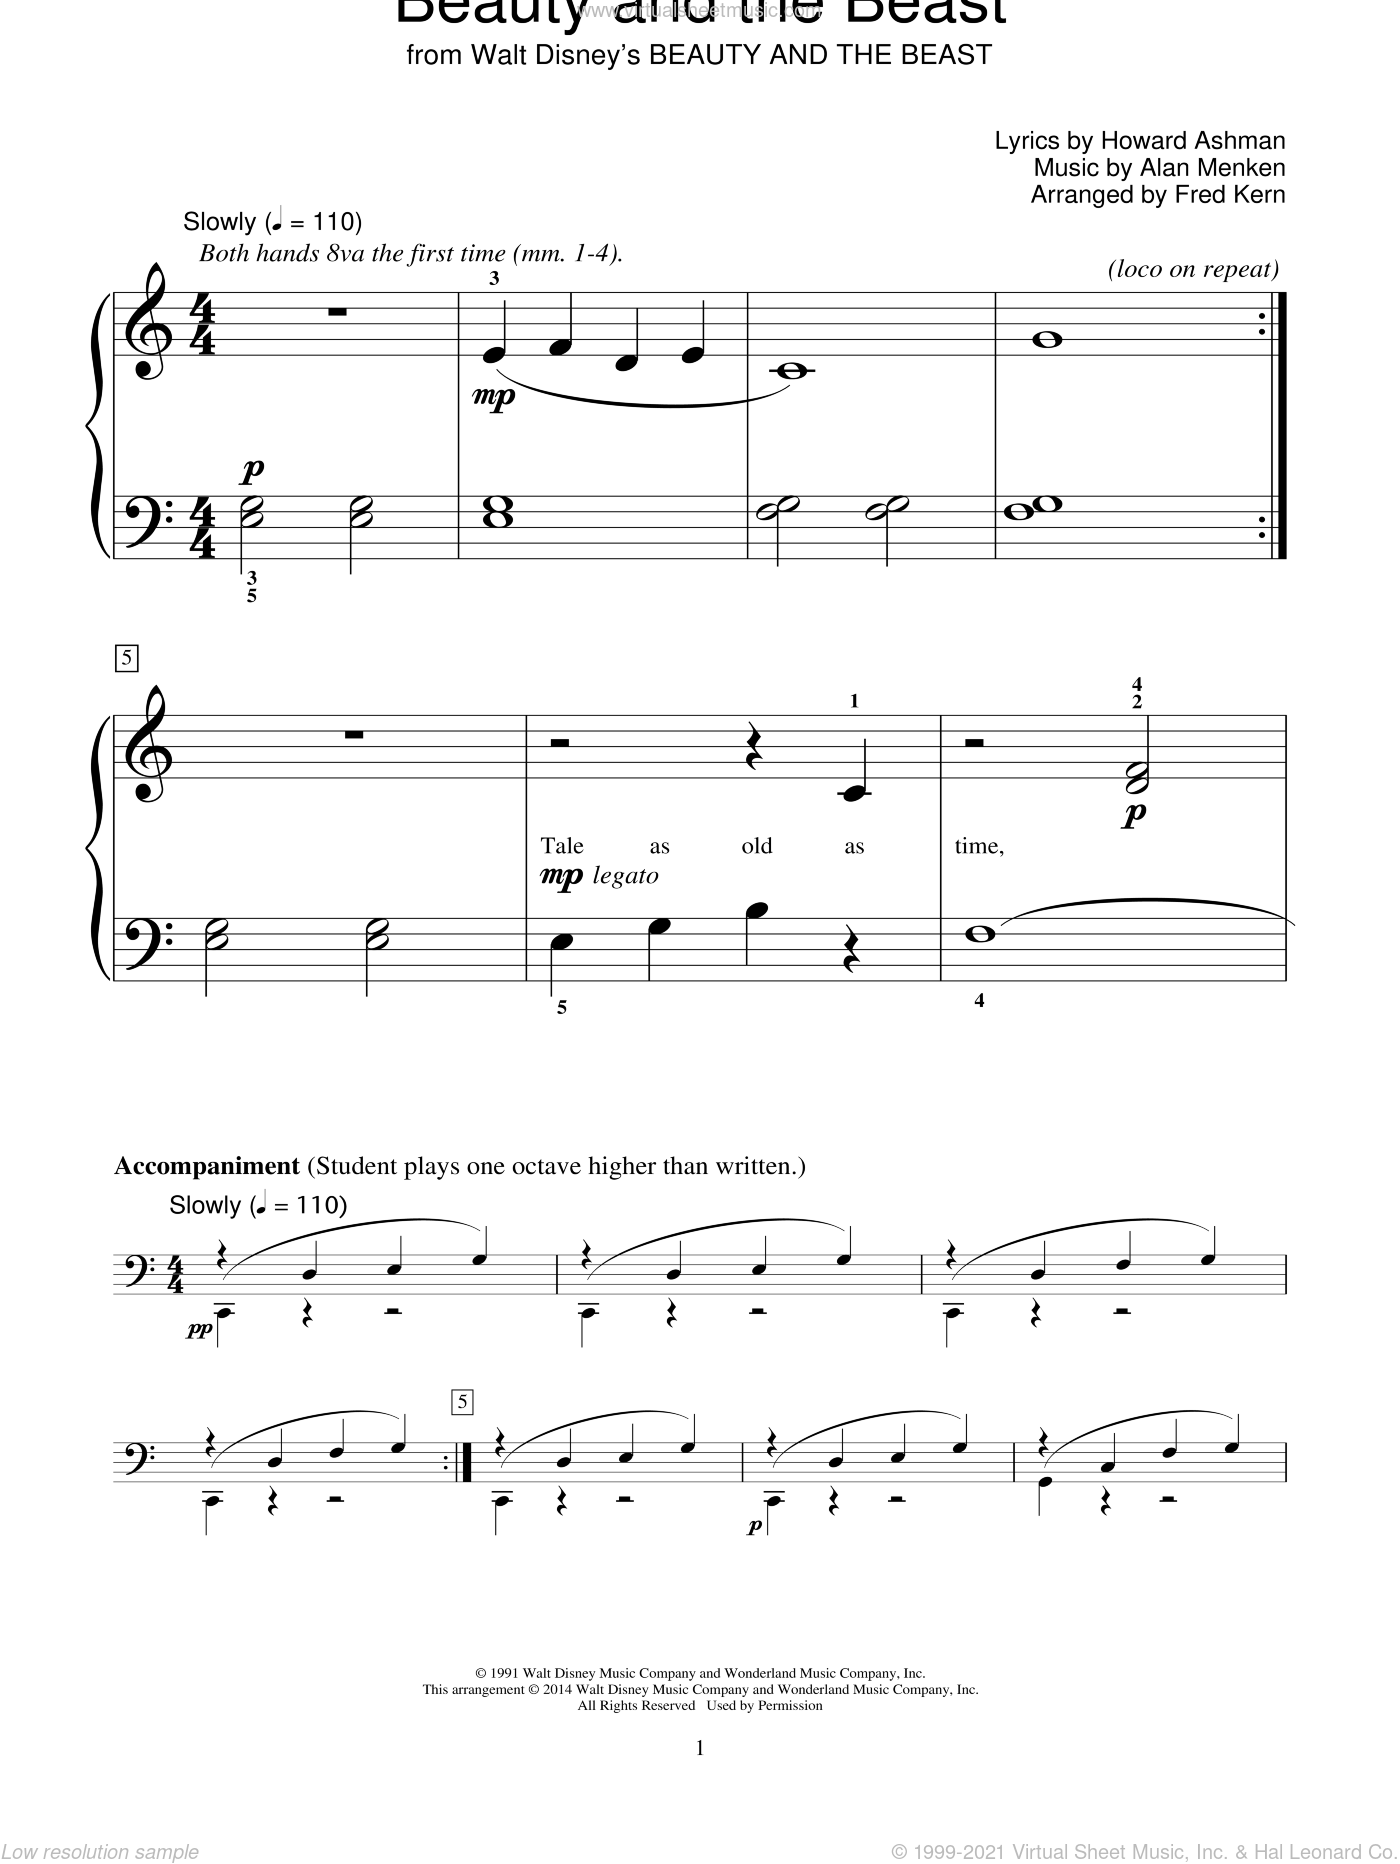 Beauty And The Beast sheet music for piano solo (elementary) by Alan Menken, Fred Kern, Bill Boyd, Celine Dion & Peabo Bryson and Howard Ashman, beginner piano (elementary)